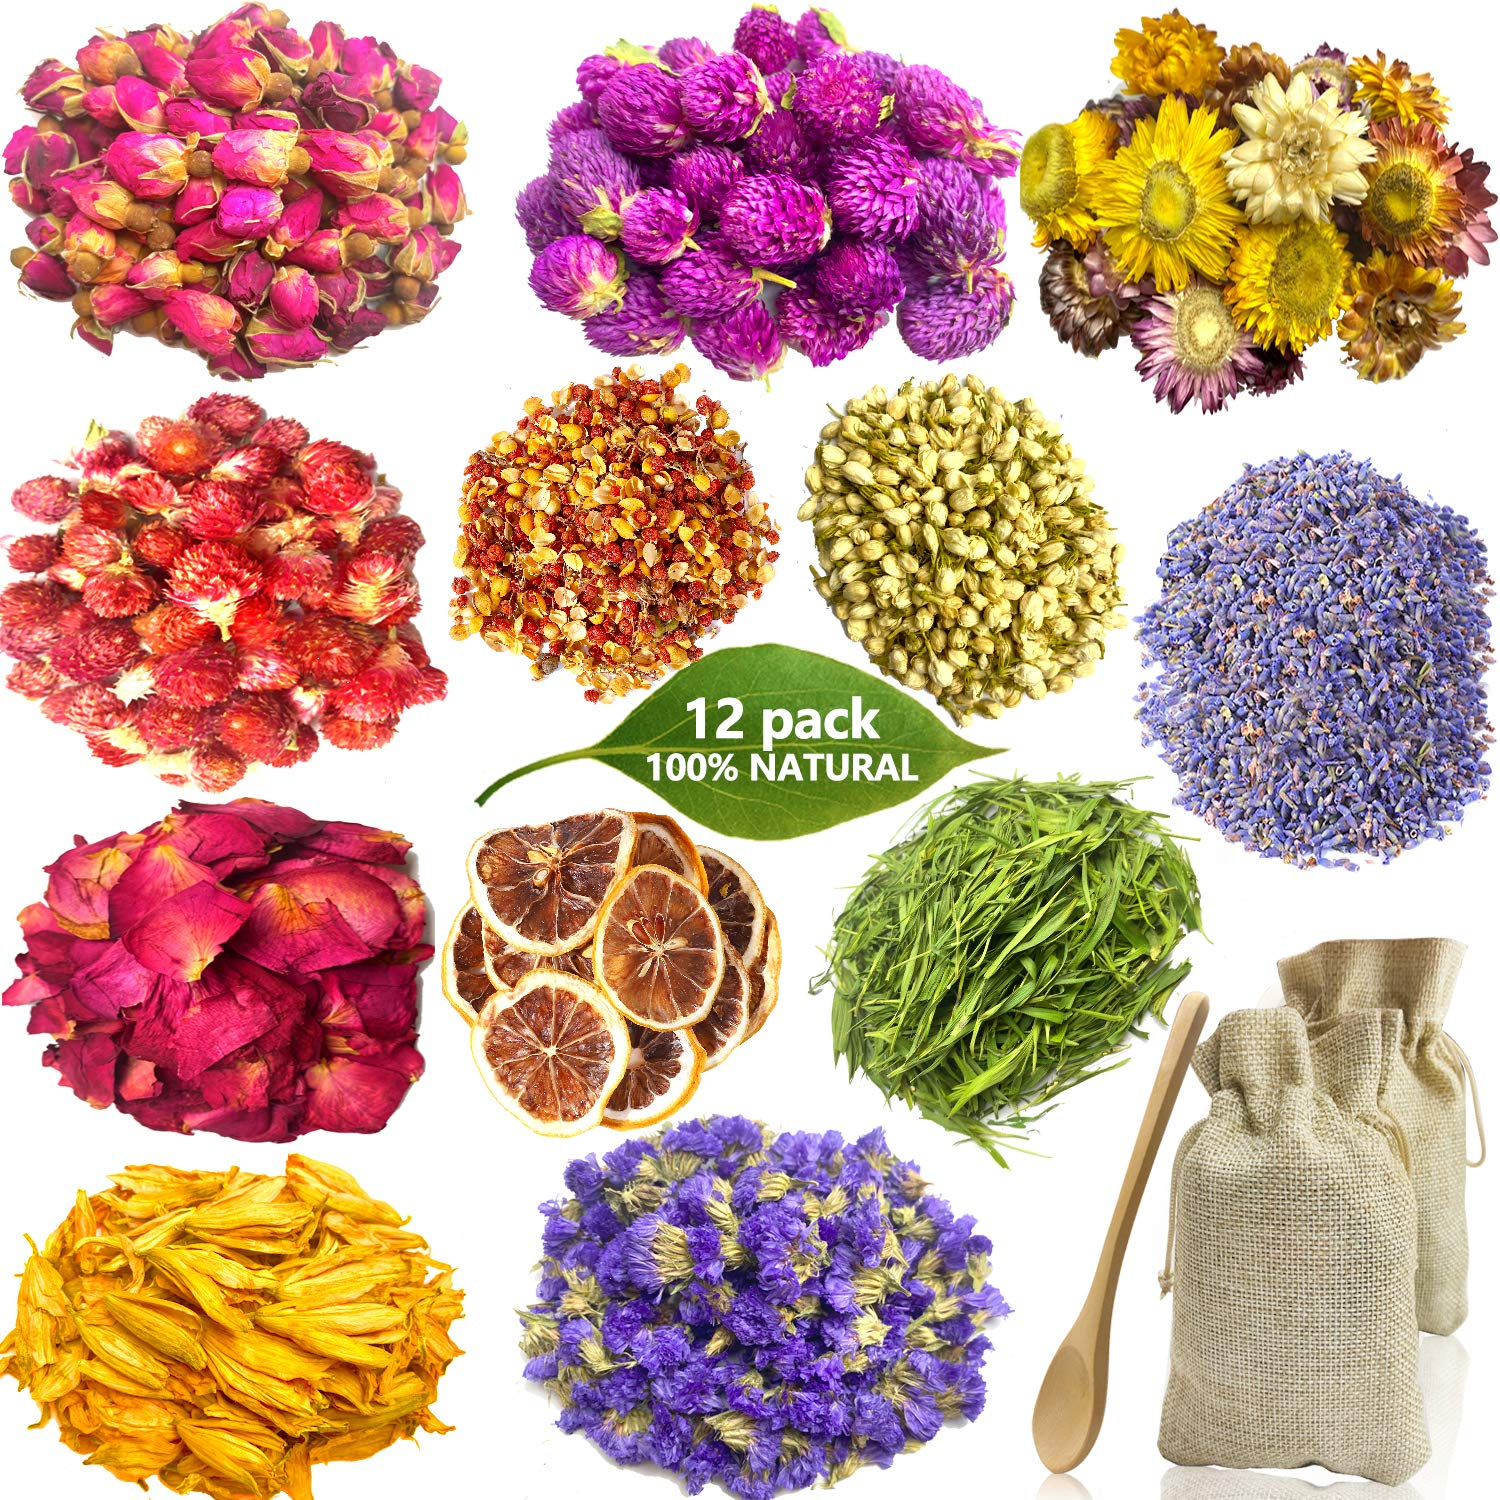 Dried Flowers for Soap Making, 12 Pack Natural Dried Flowers and Herbs Kit for Resin Candle Making Bath, Include Dried Lavender, Rose Petals, Rosebuds, Jasmine, Lemon Slice, Gomphrena Globosa and More